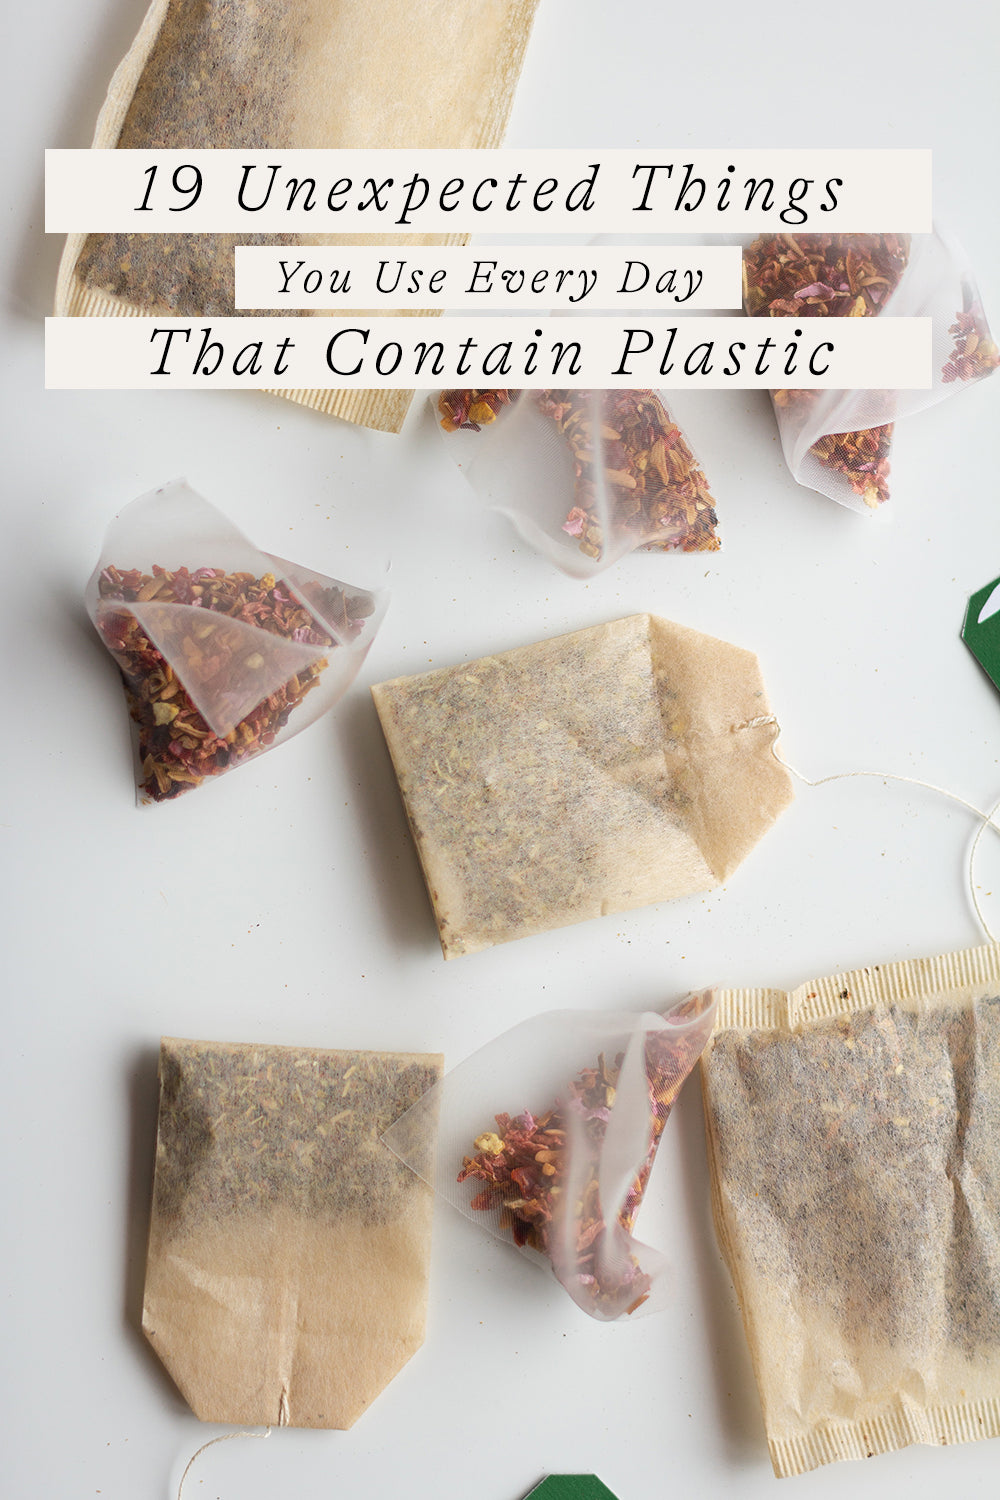 19 unexpected things that contain plastic.